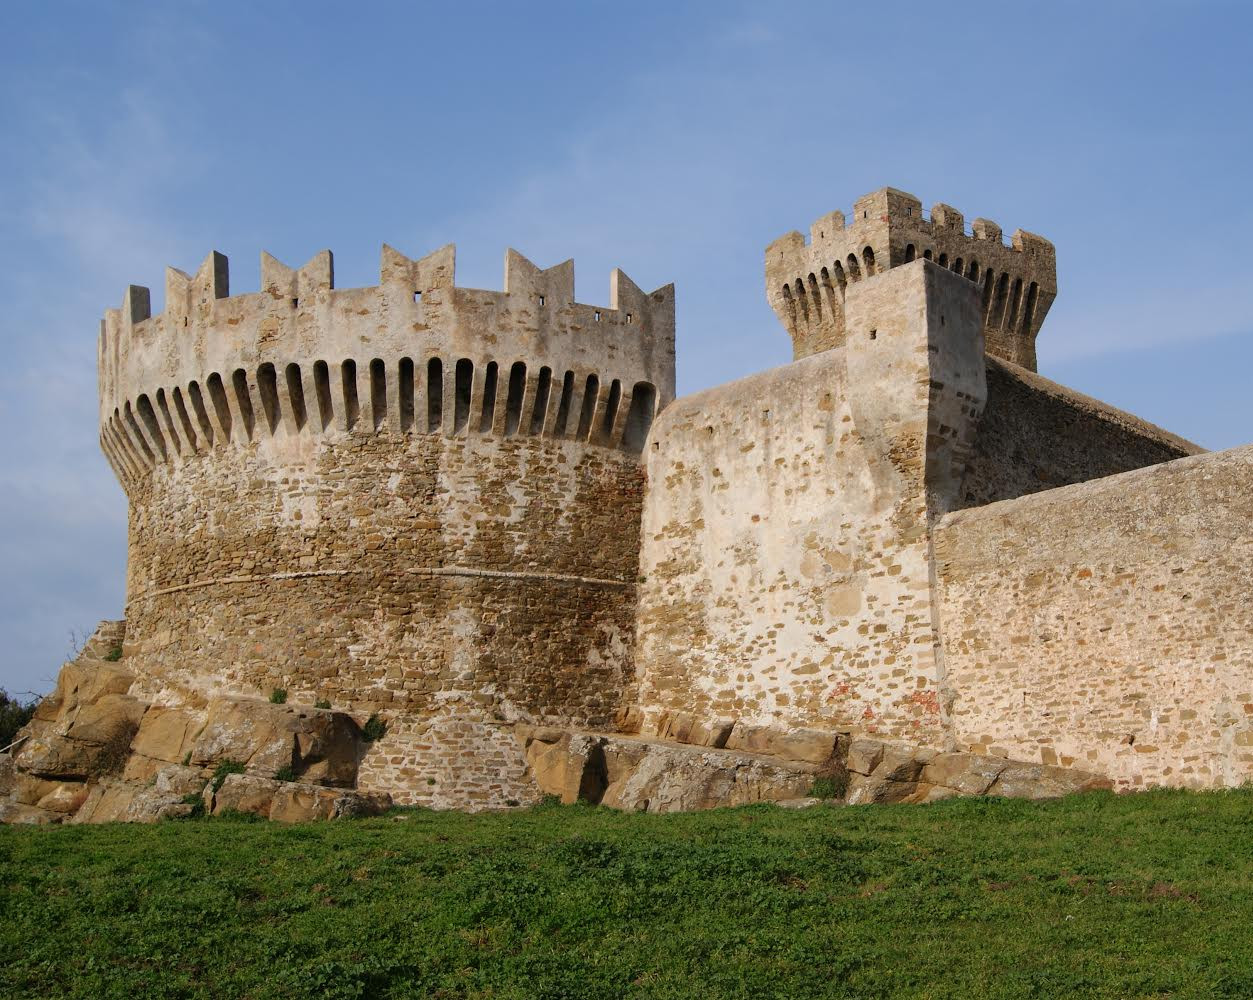 From San Vincenzo to Castle of Populonia